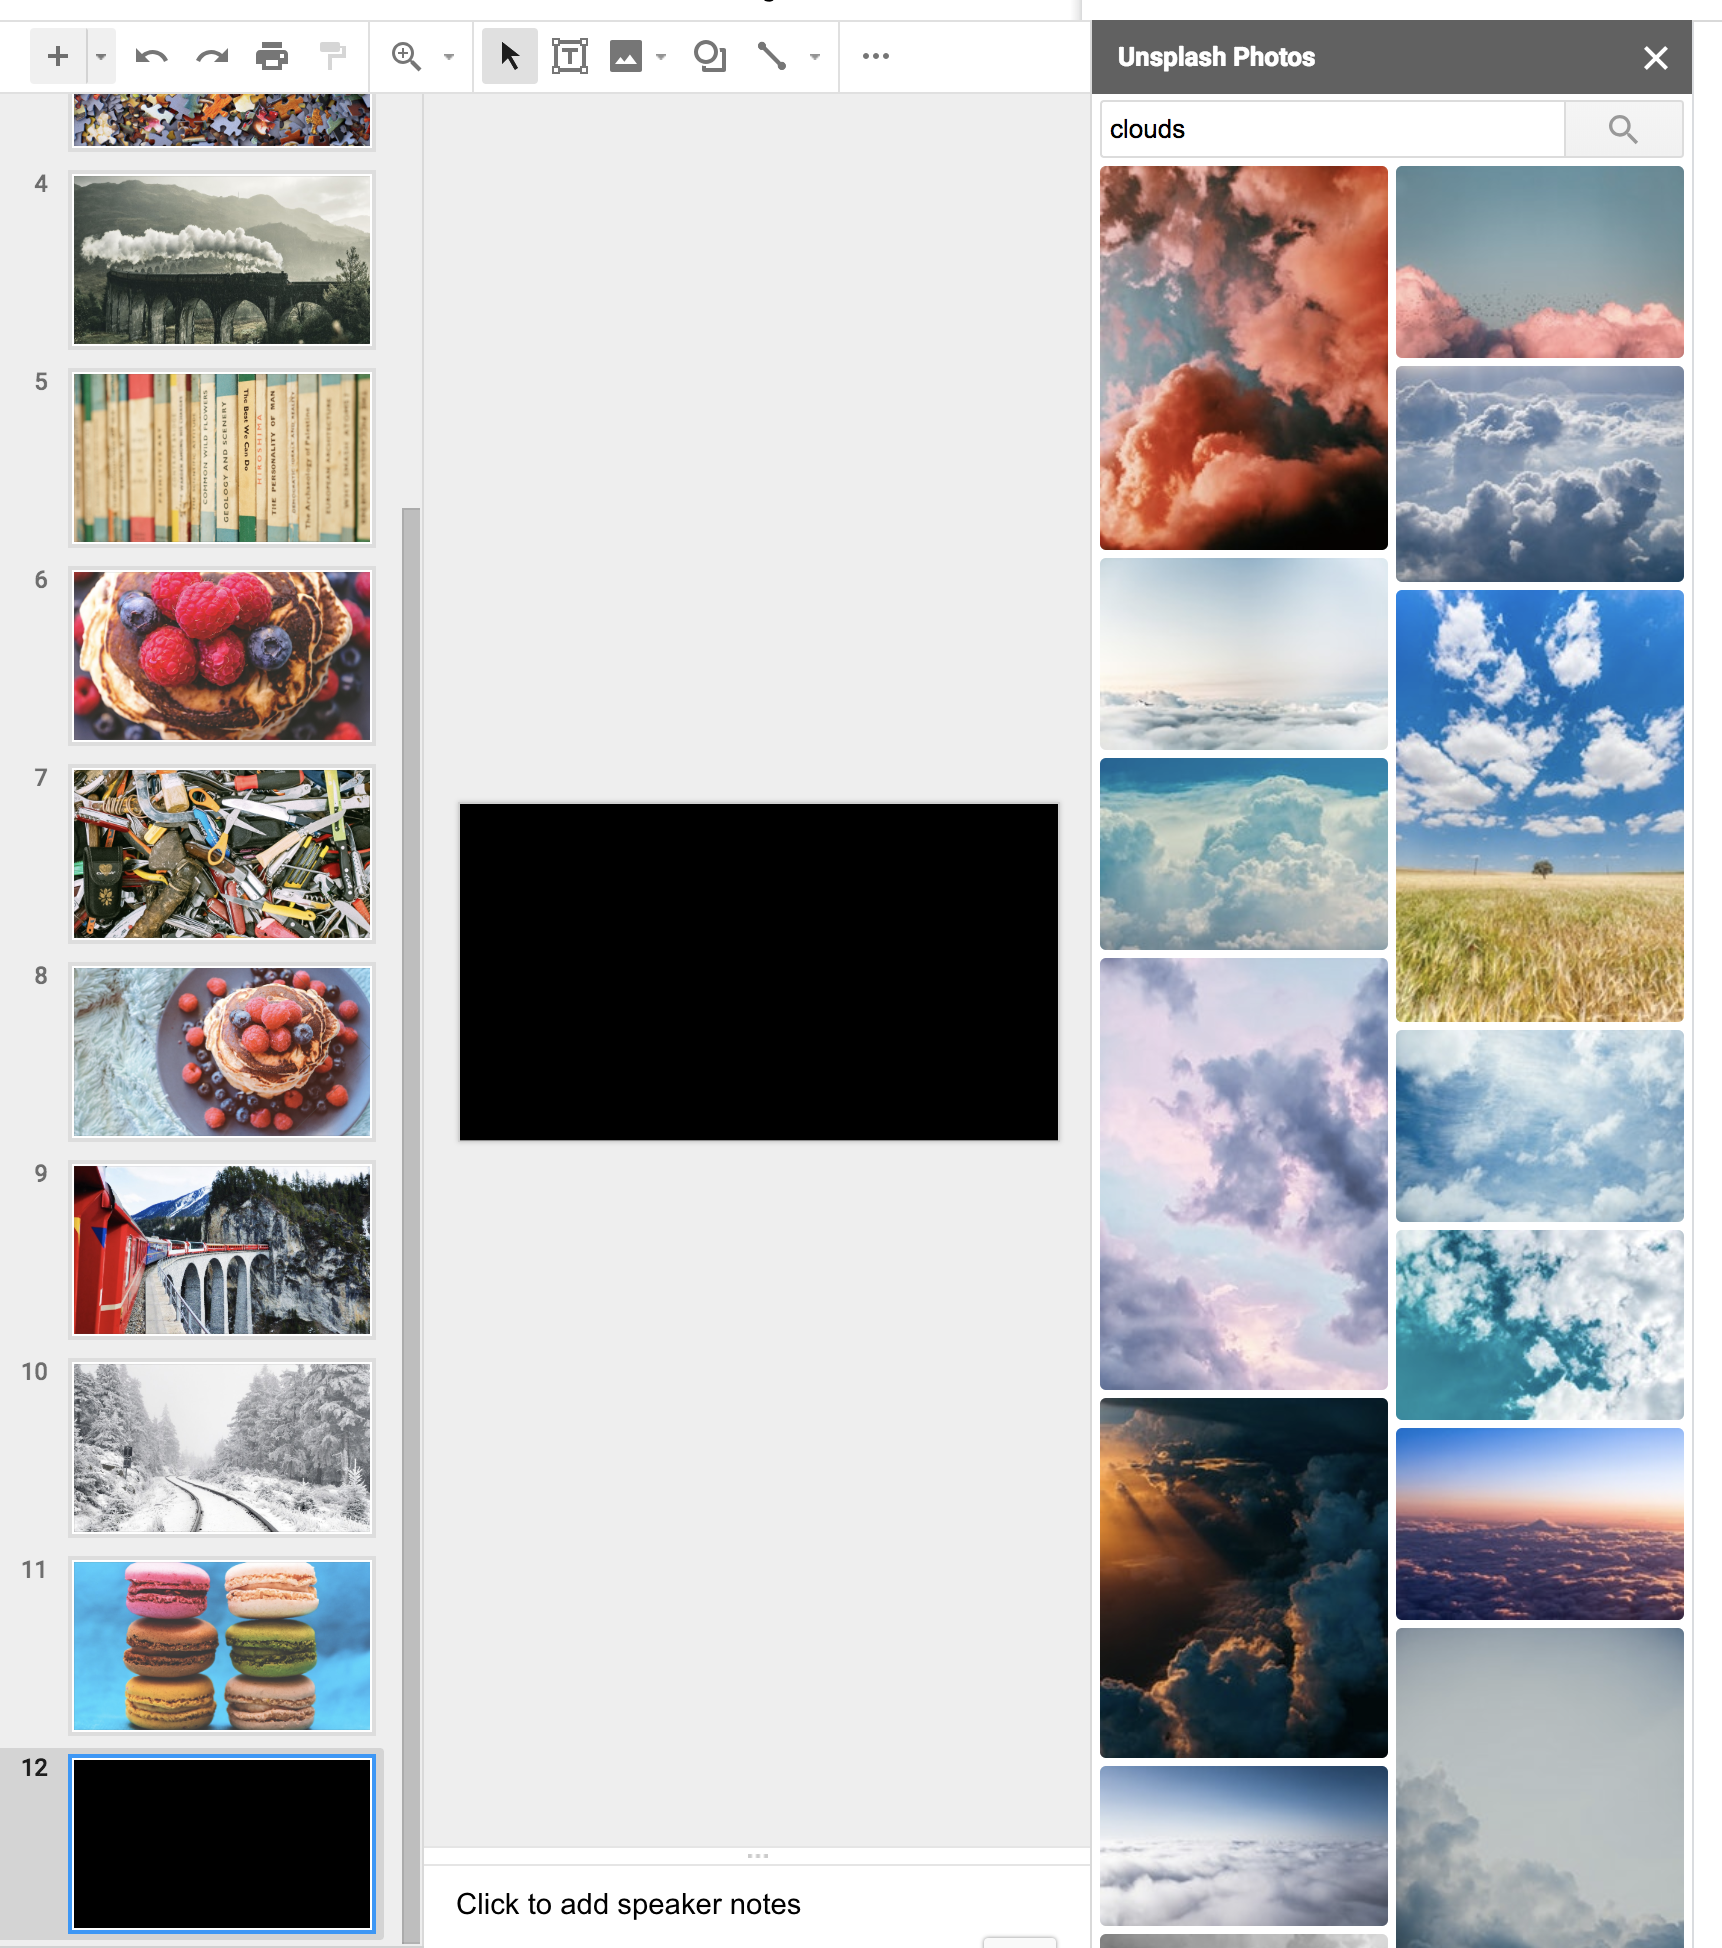 The unsplash add-on open on a slide deck that's just a bunch of unsplash images. The macarons image is the second to last slide.